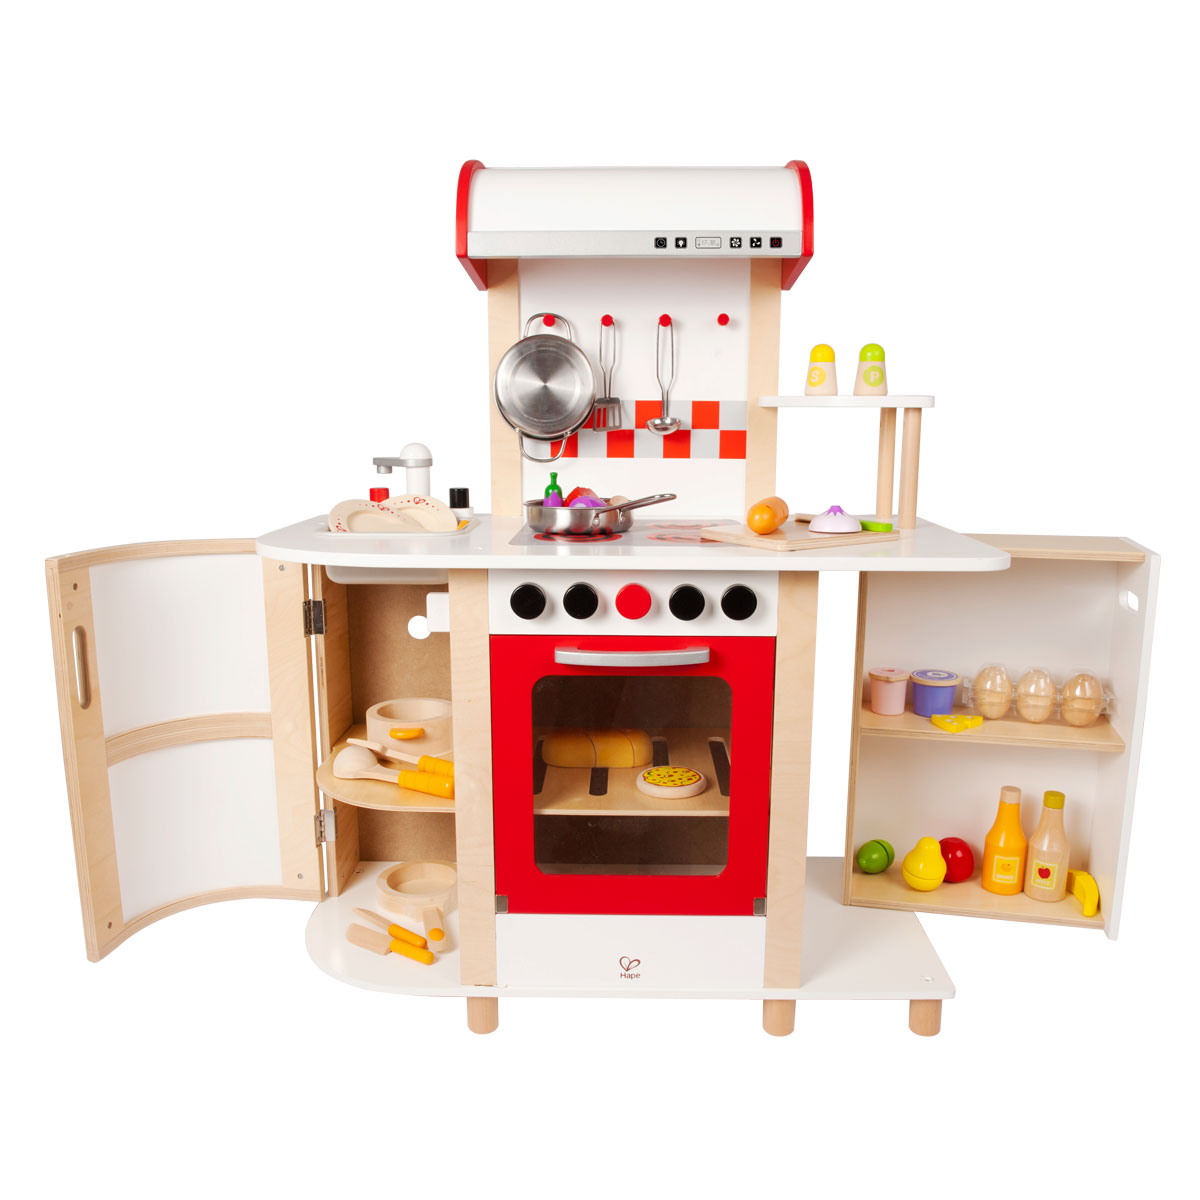 Hape multi function kitchen e8018 for Kitchen kitchen